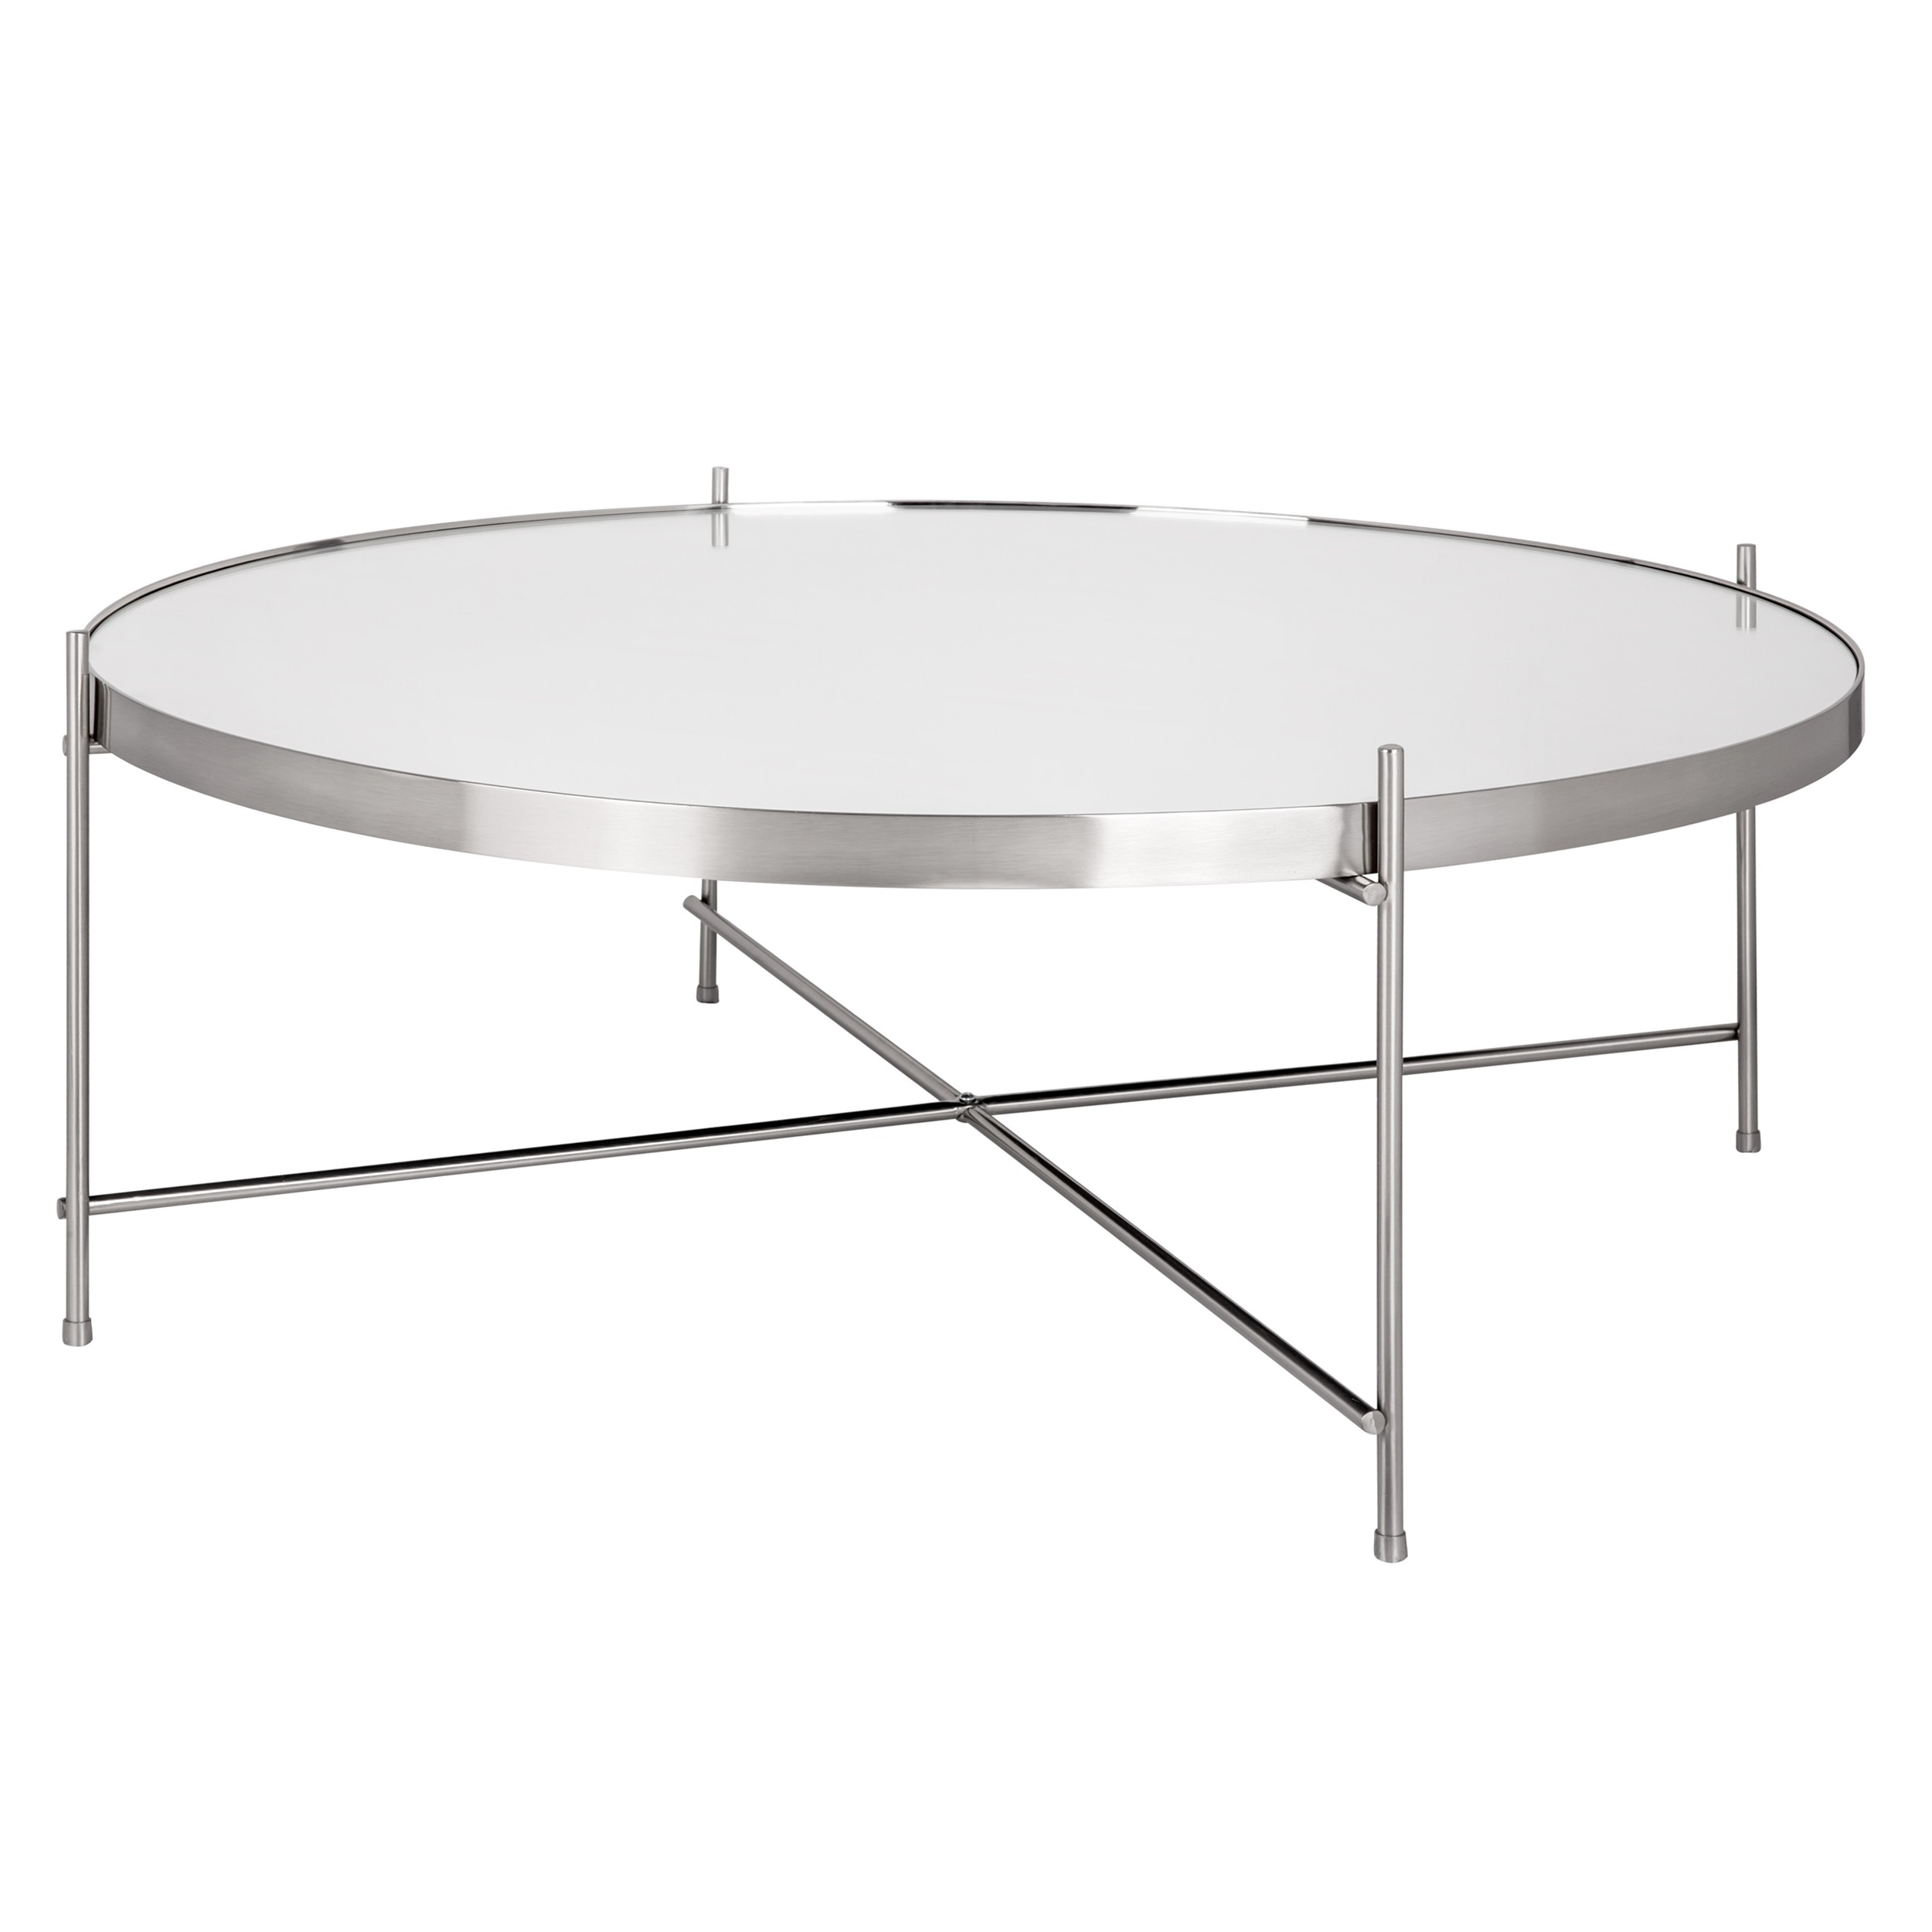 Table Basse Ronde Design Table Basse Ronde Valdo Argent L